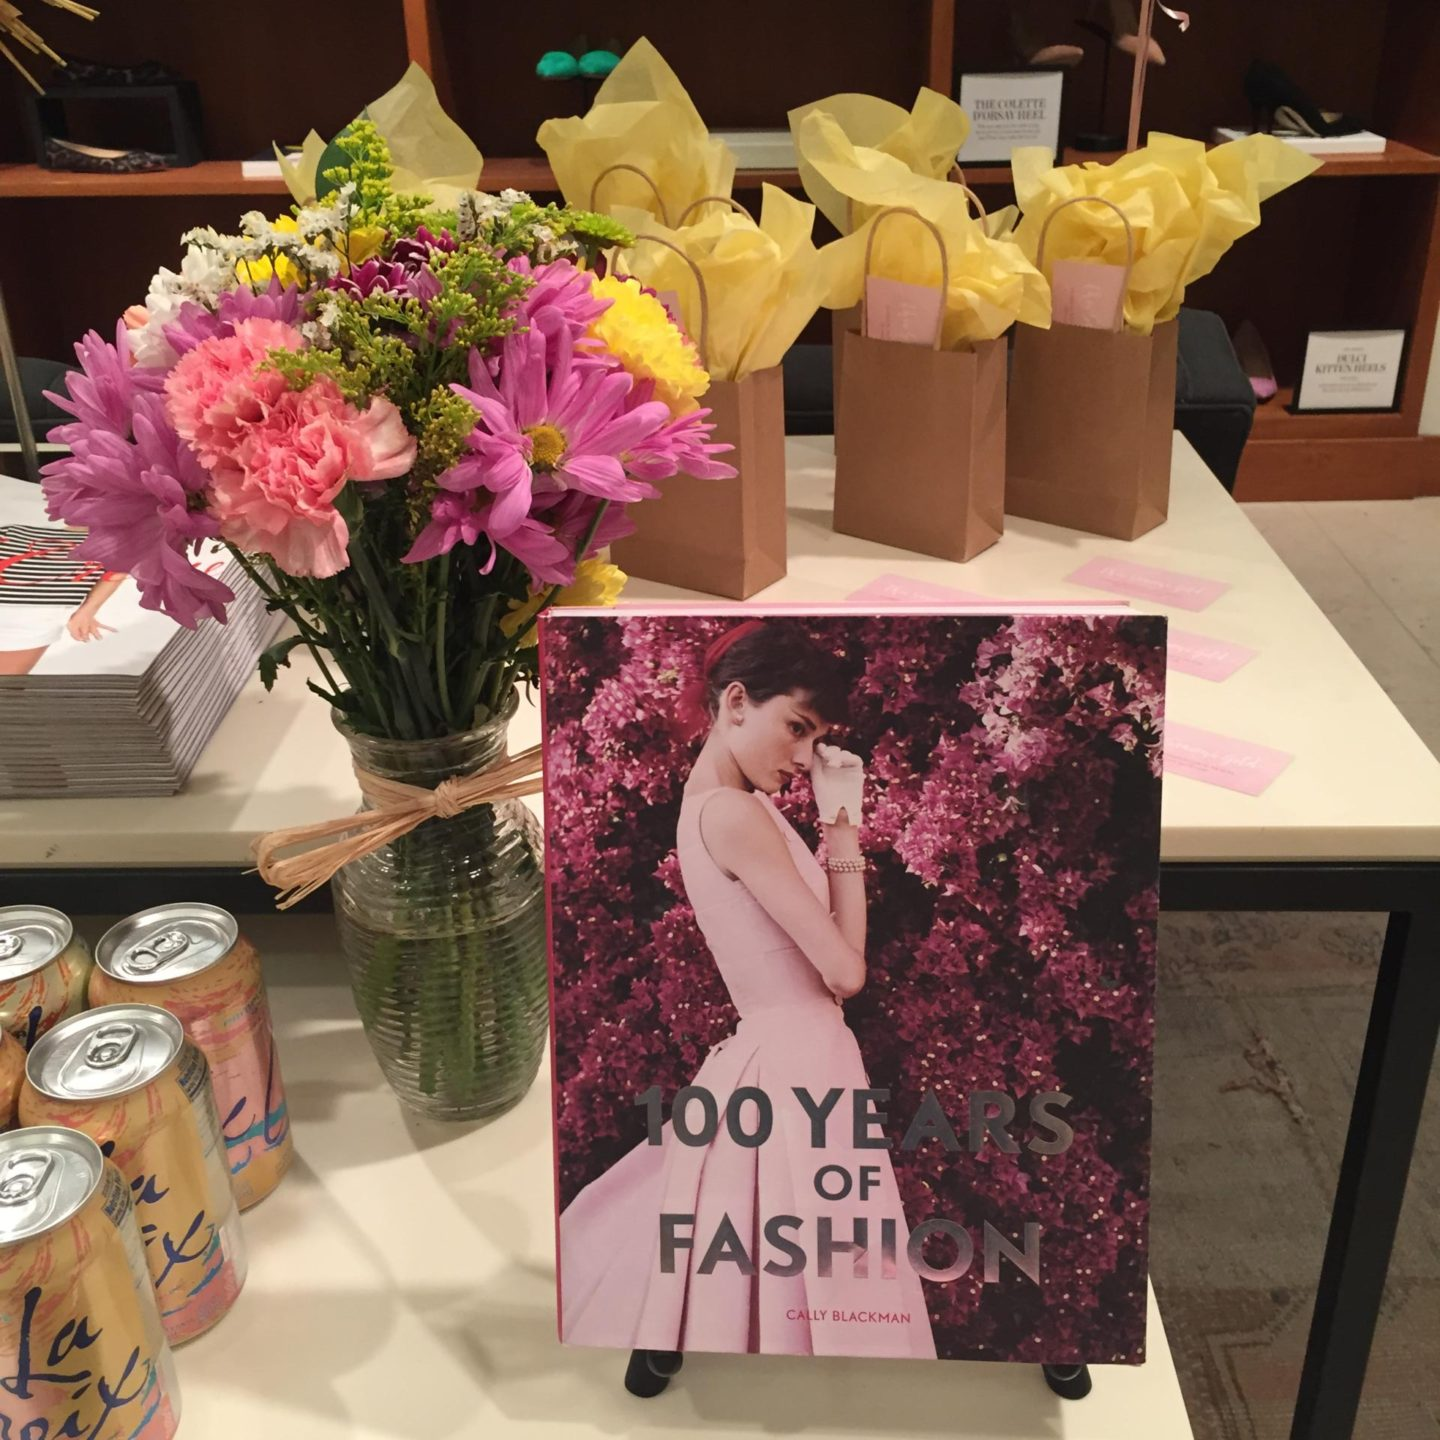 This Season's Gold // J.Crew Stylist Event